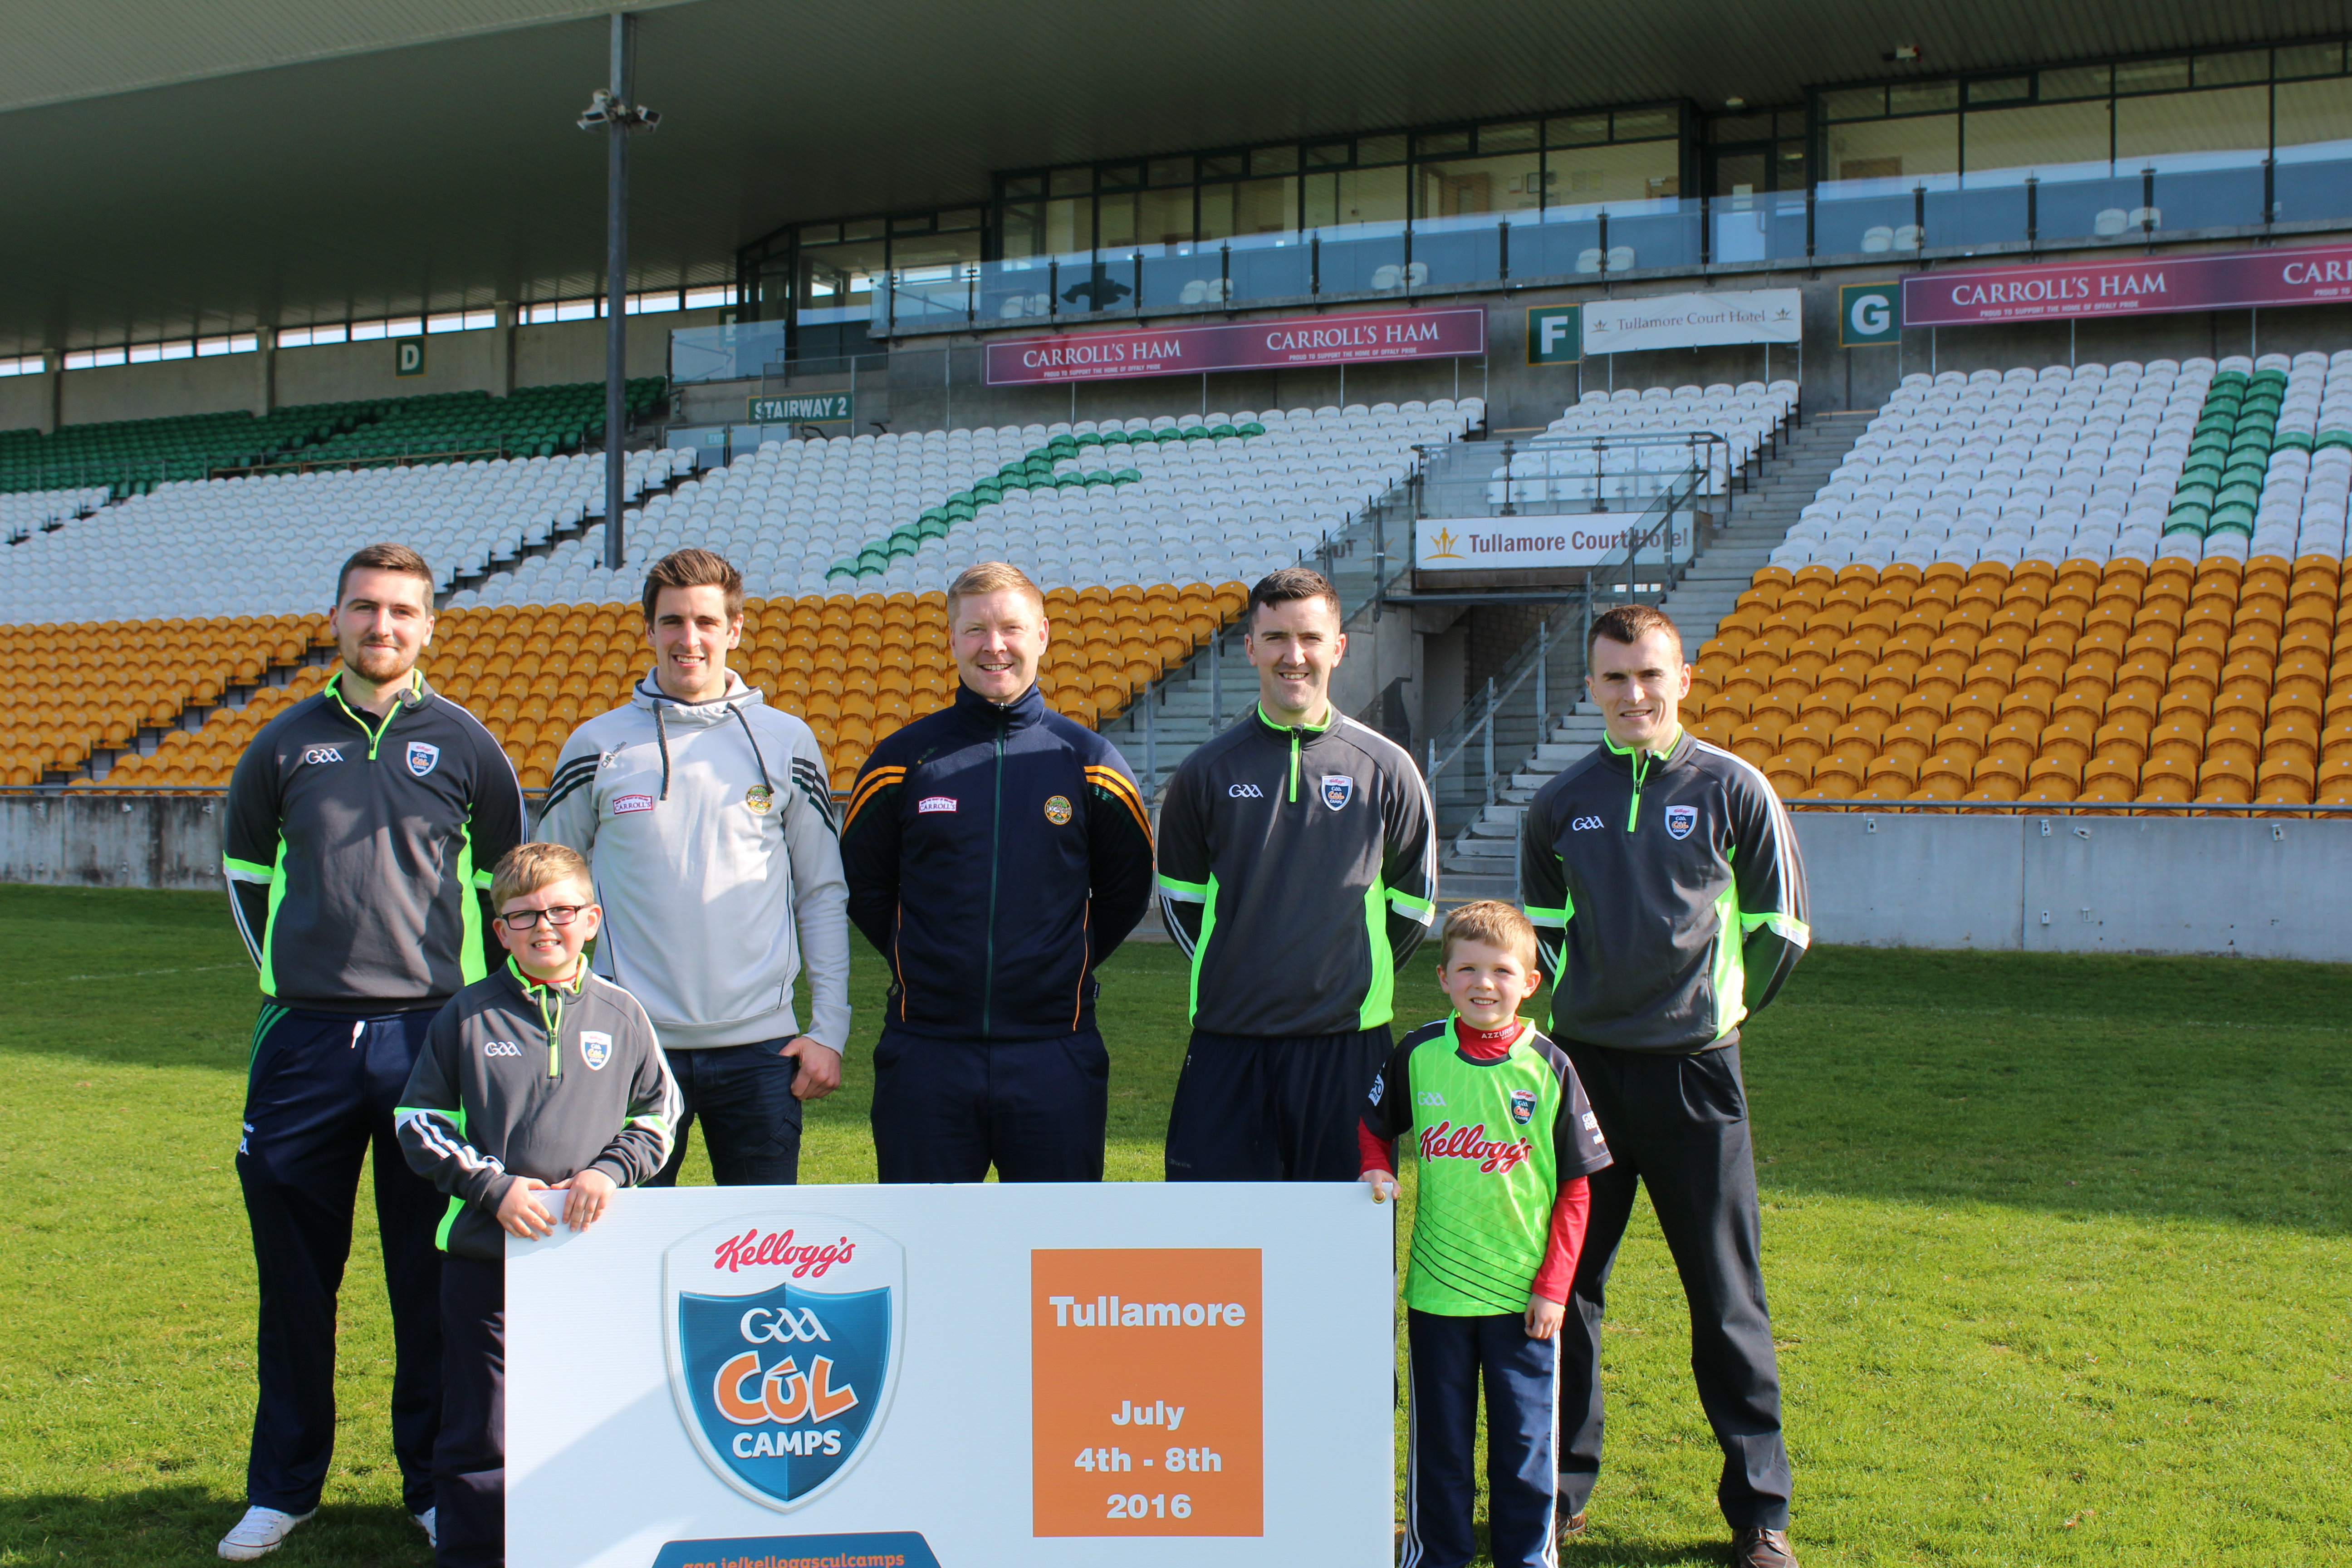 Offaly Cul Camps 2016